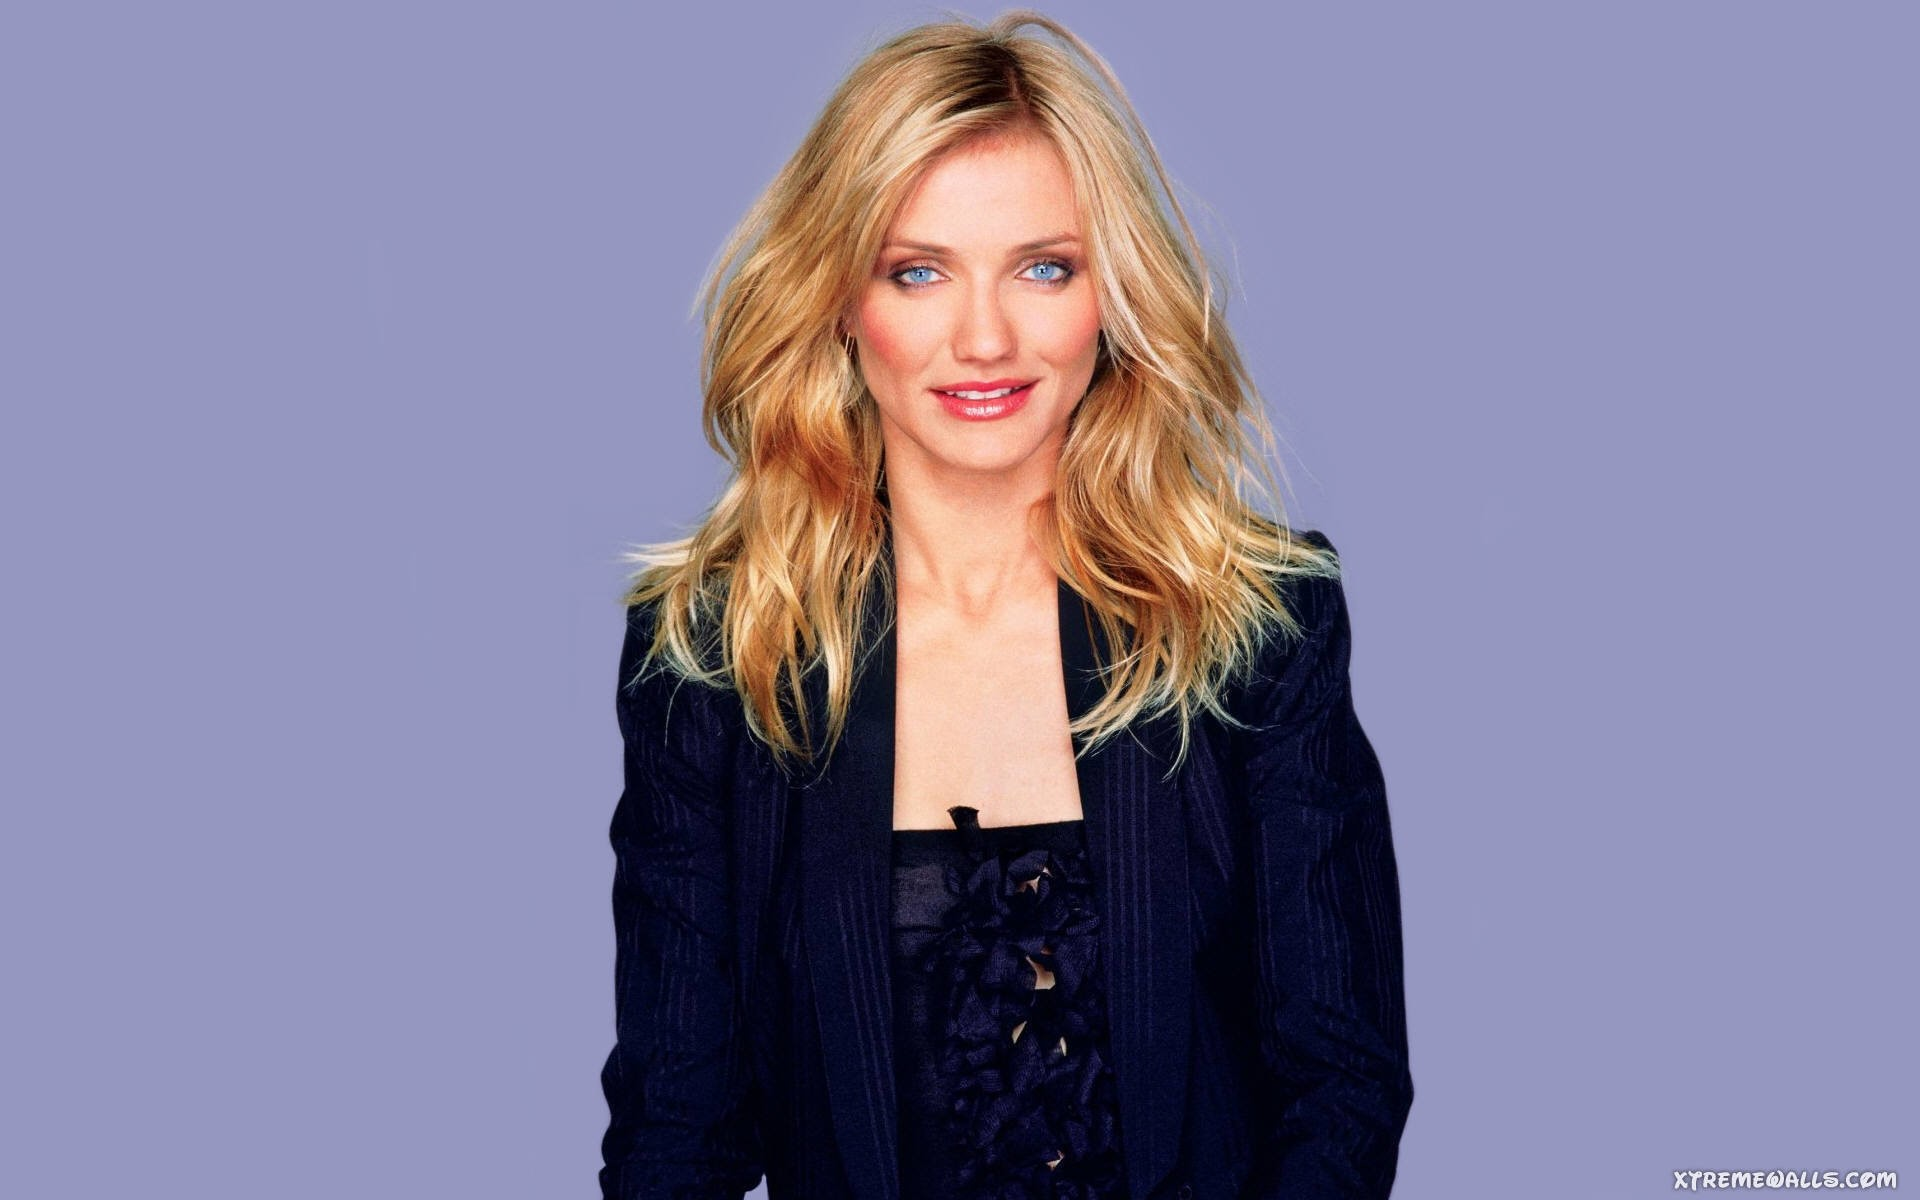 Cameron Diaz Wallpapers for Windows